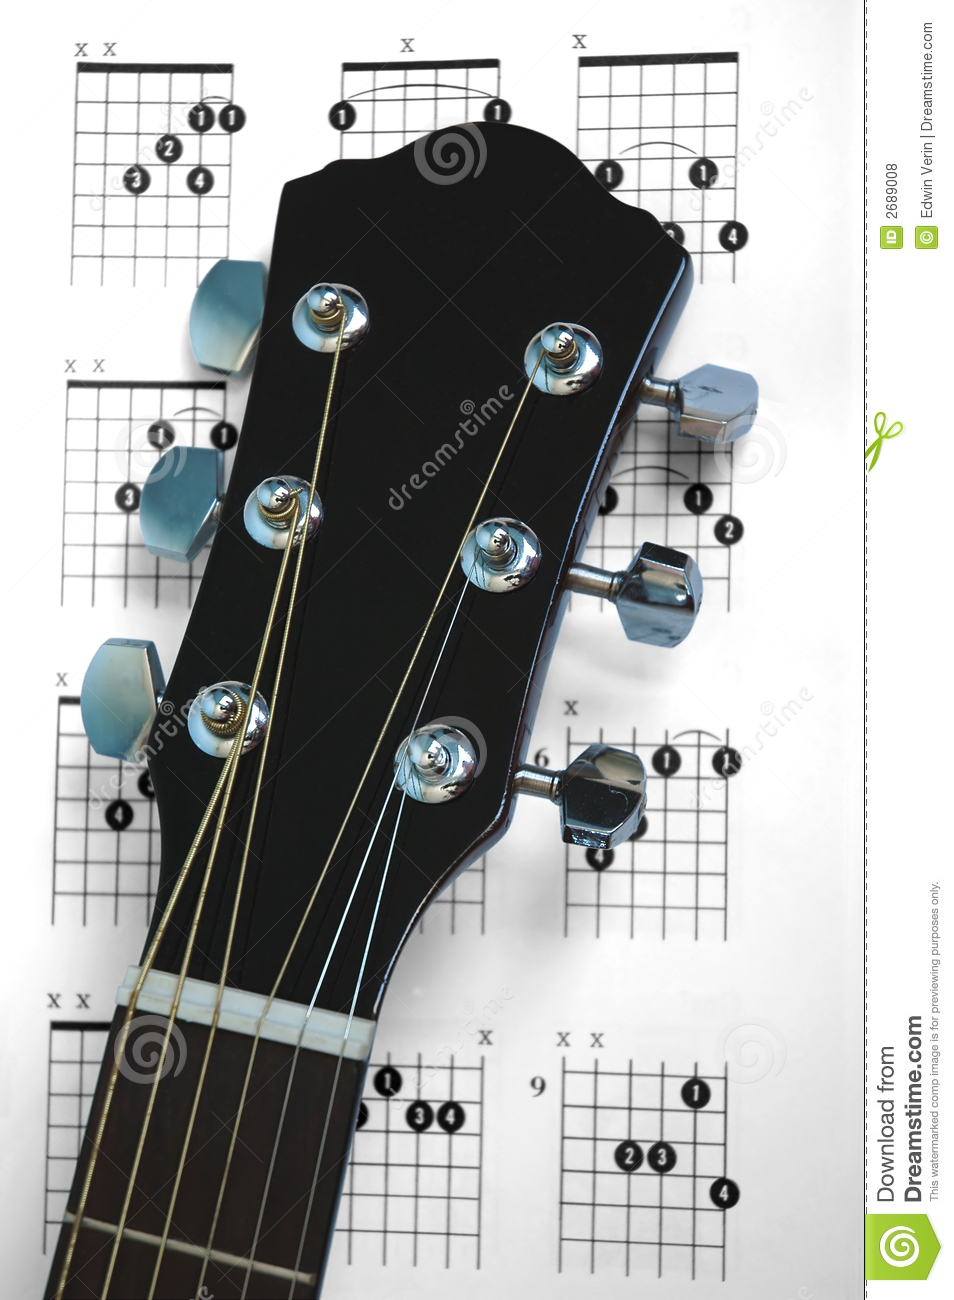 Guitar Chords Stock Photo Image Of Musical Object Fretboard 2689008